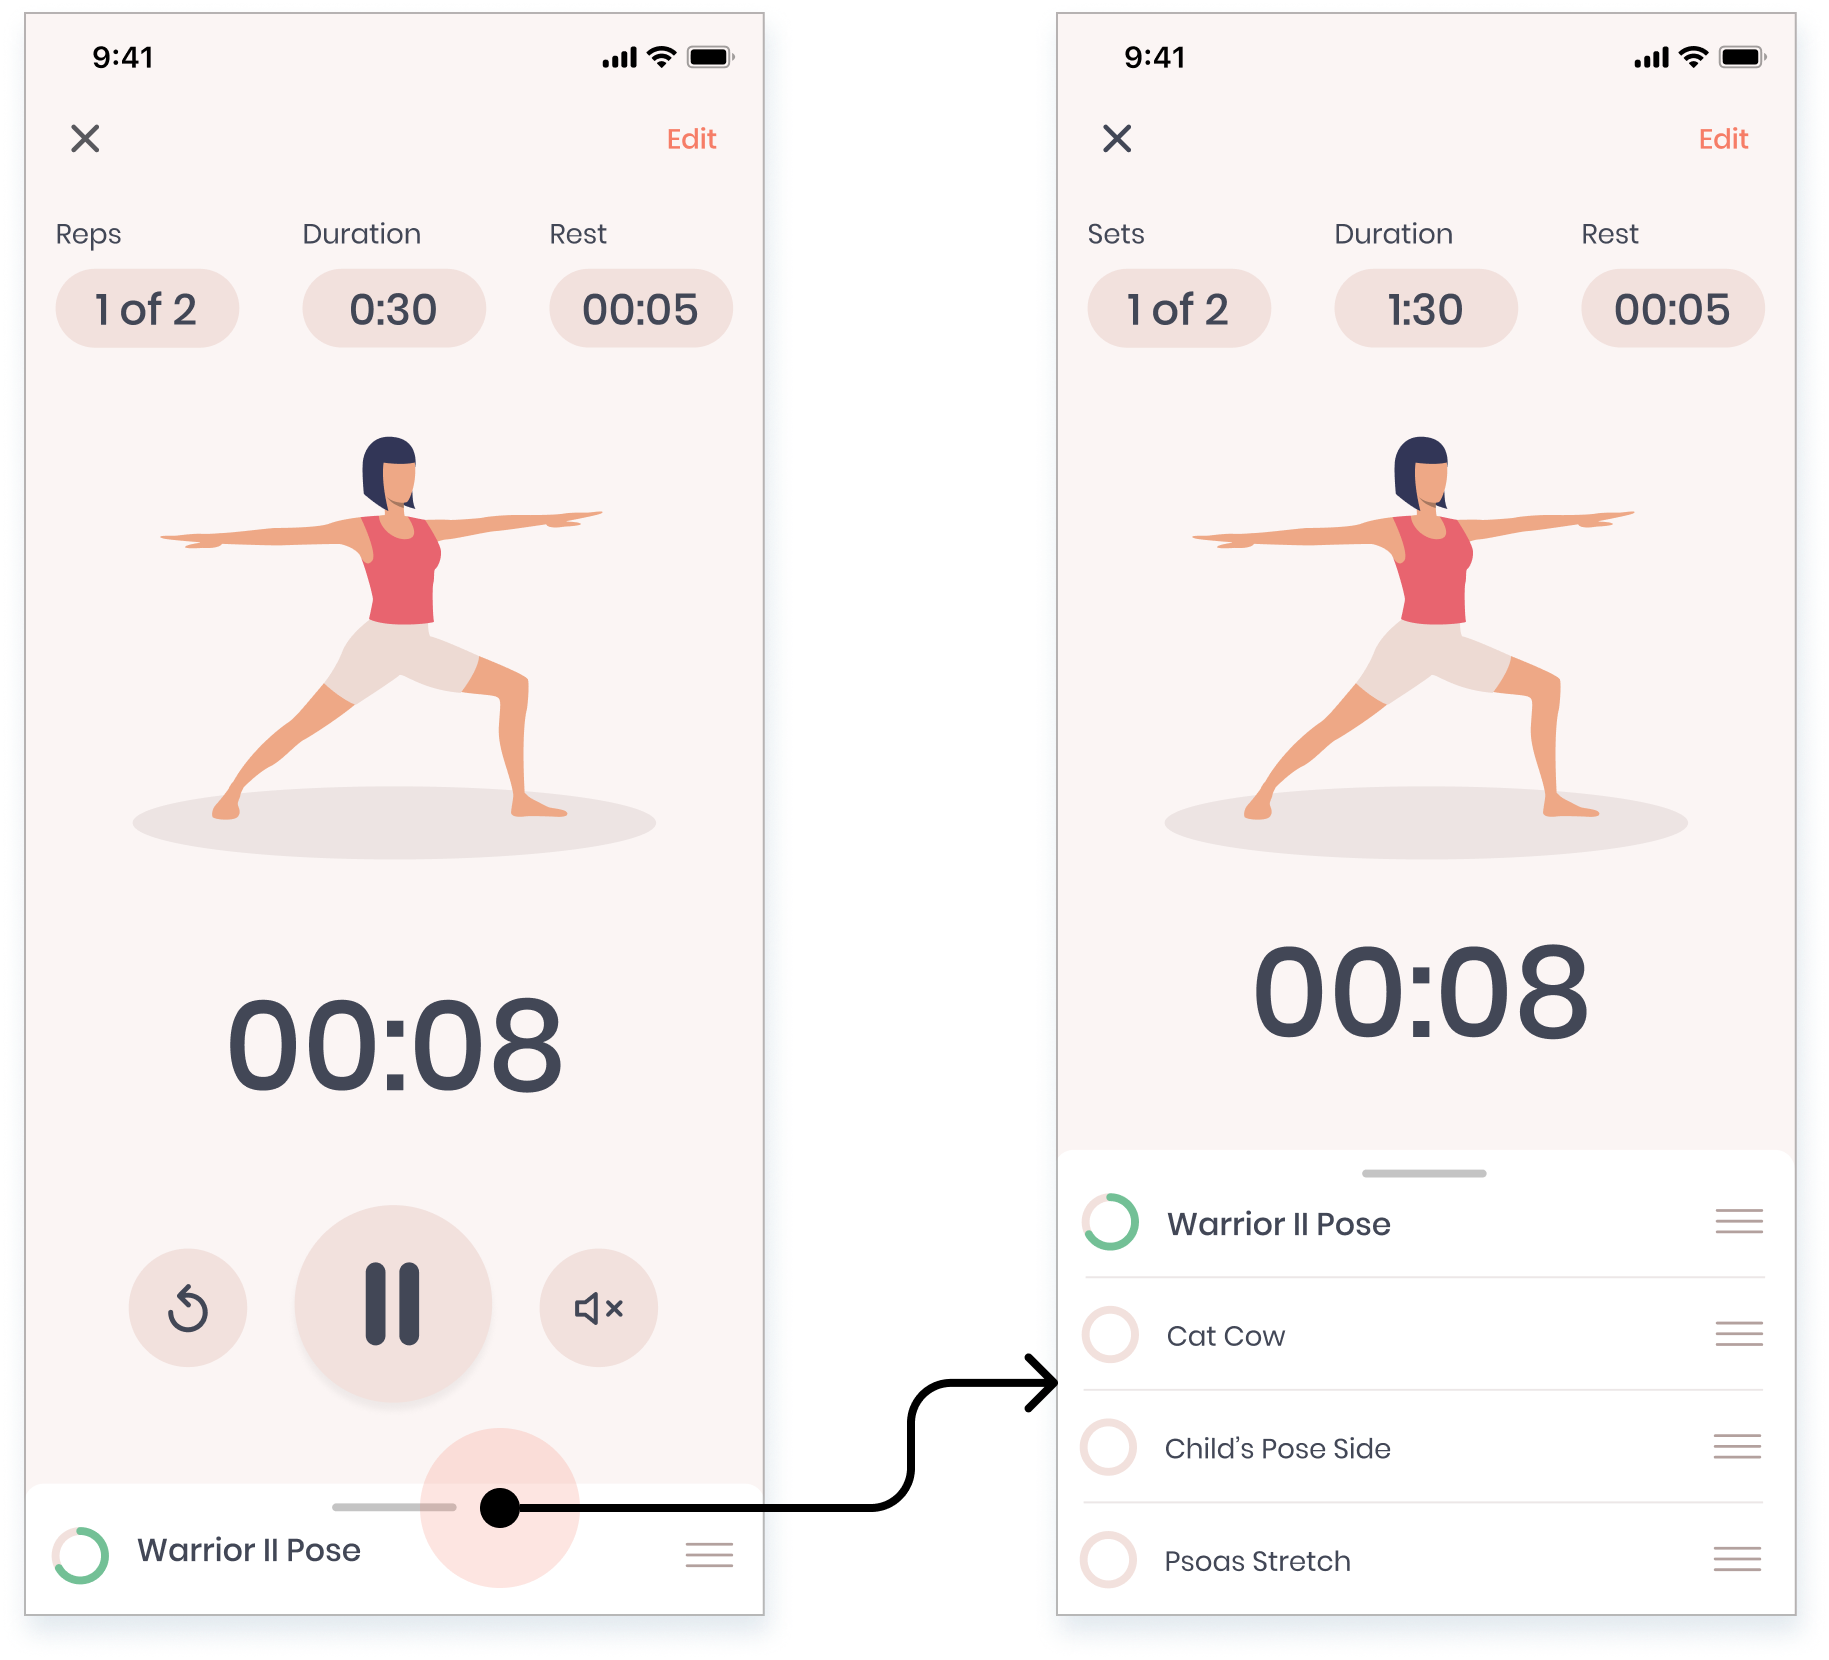 High-fidelity design showing how to expand a routine in Stretch